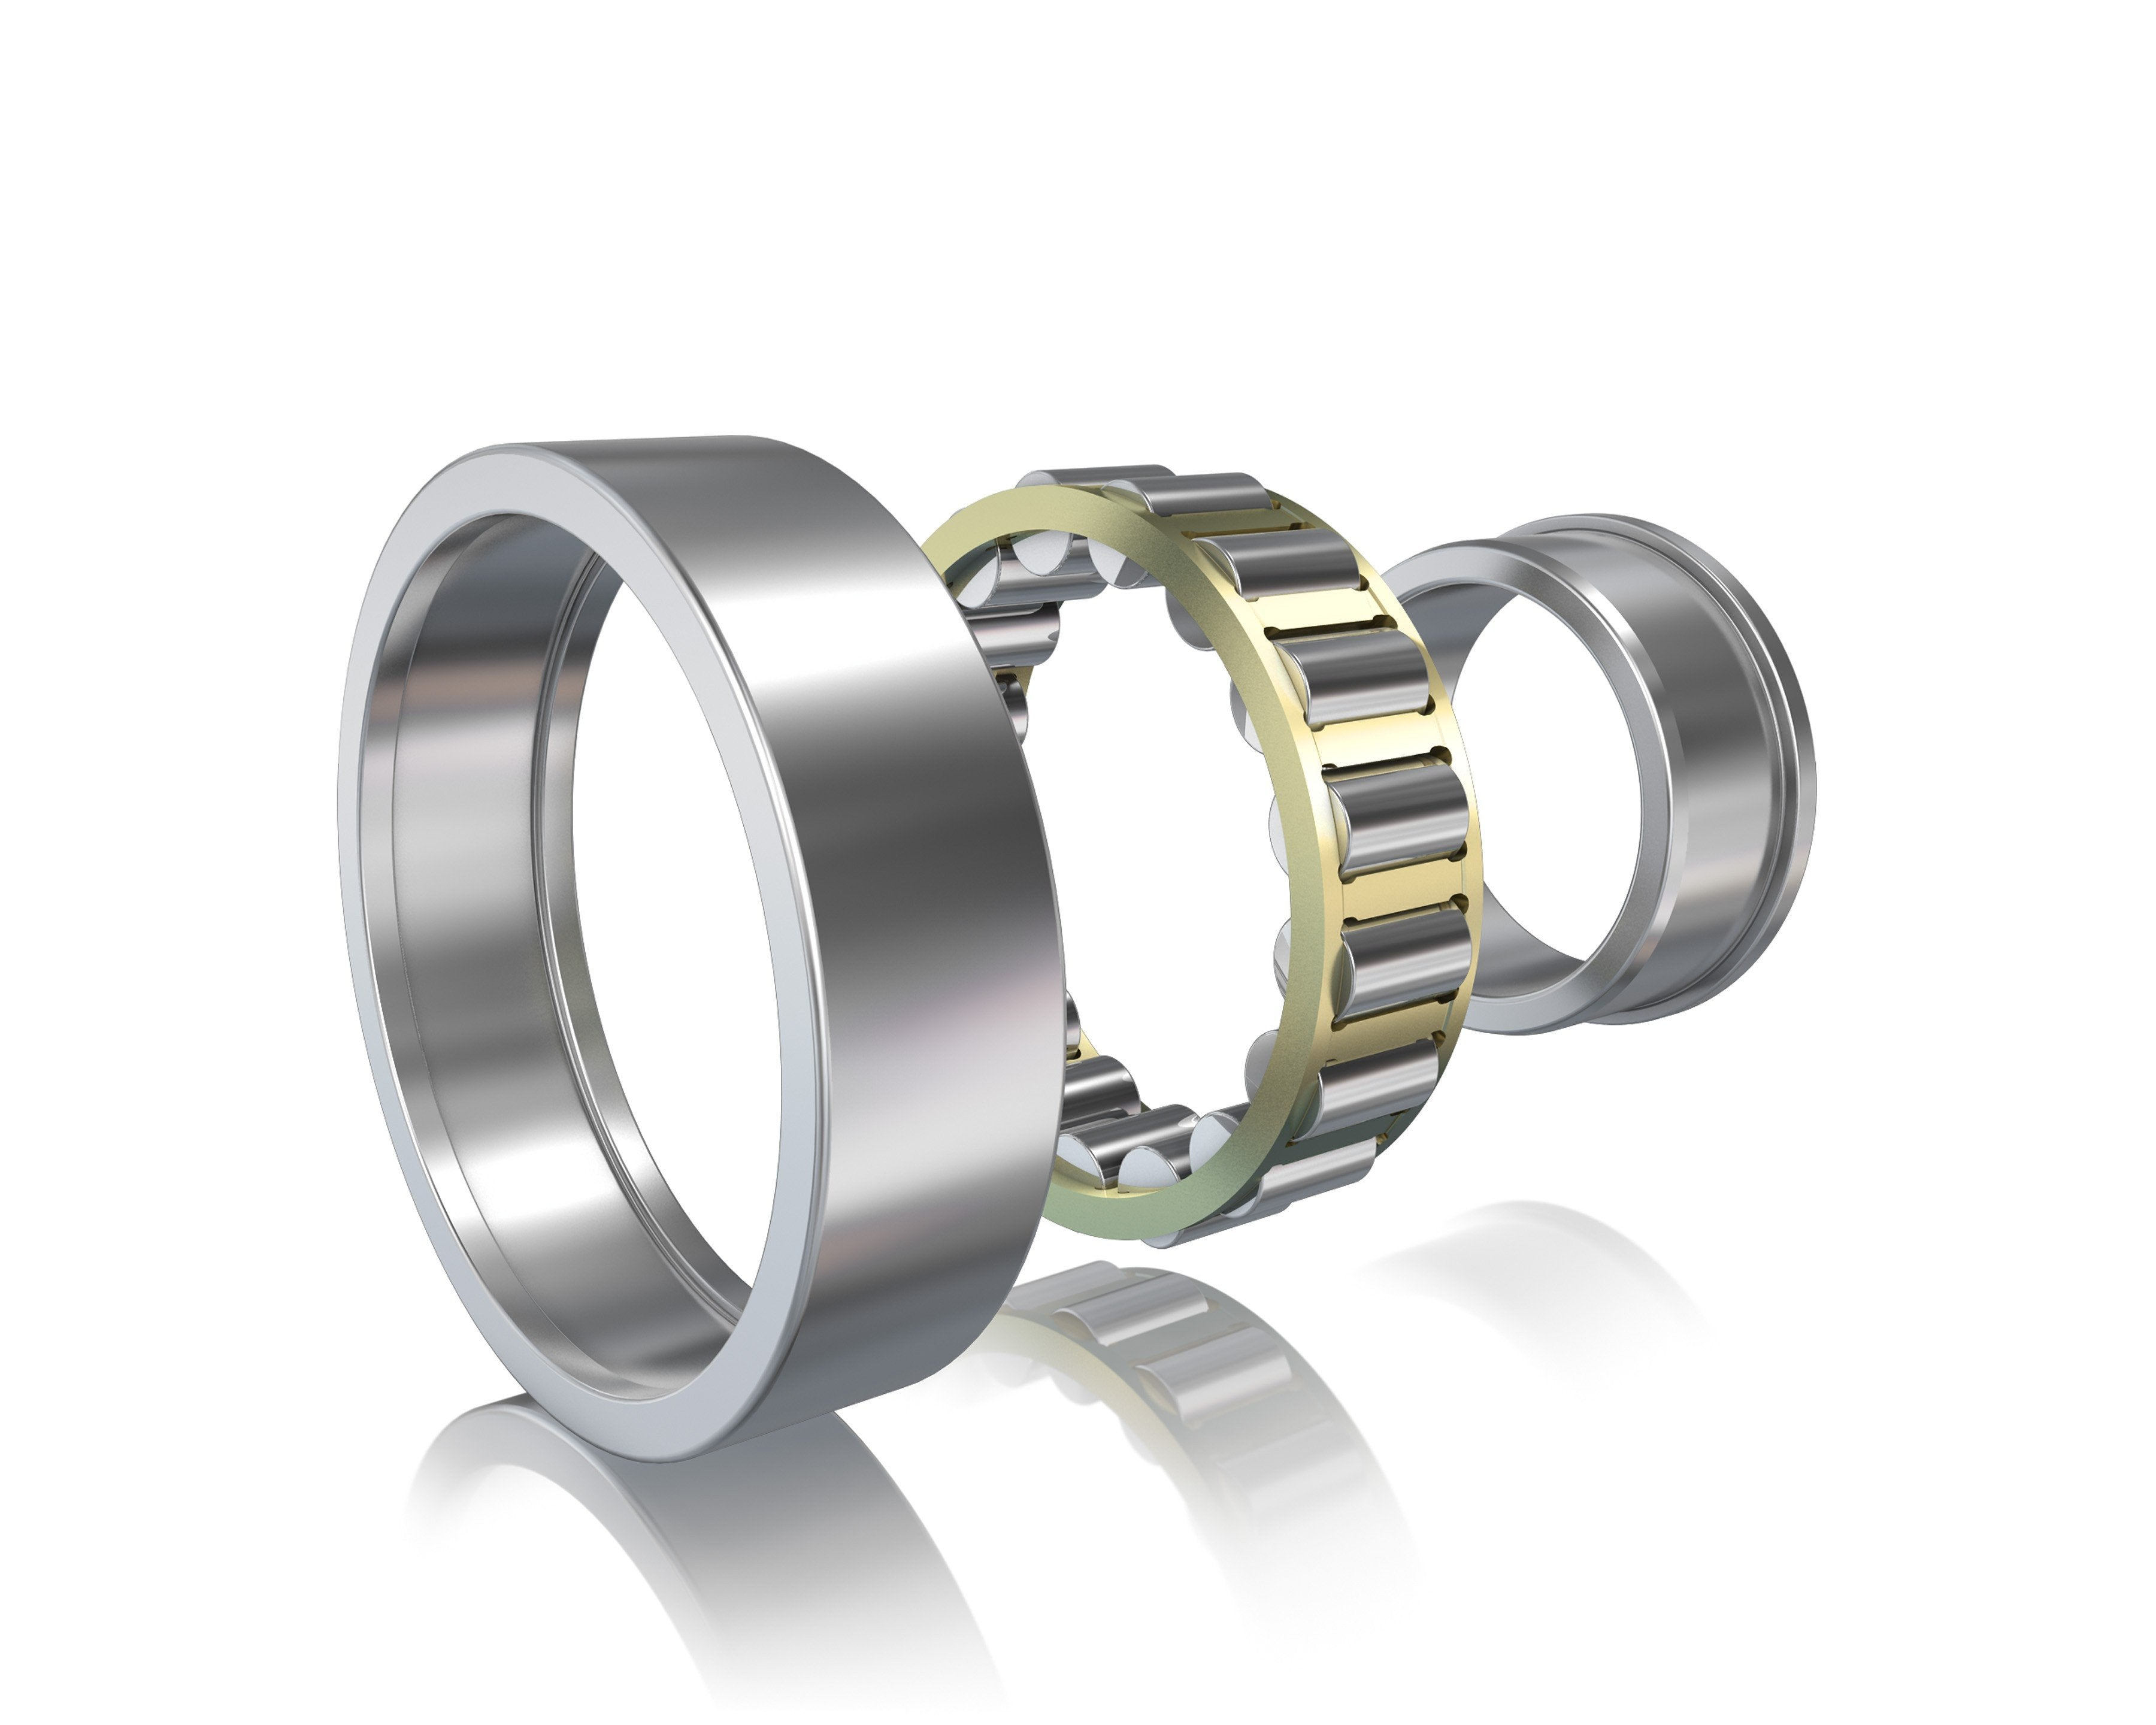 NJ314-ECP-C4-SKF, Bearings, Cylindrical roller bearings